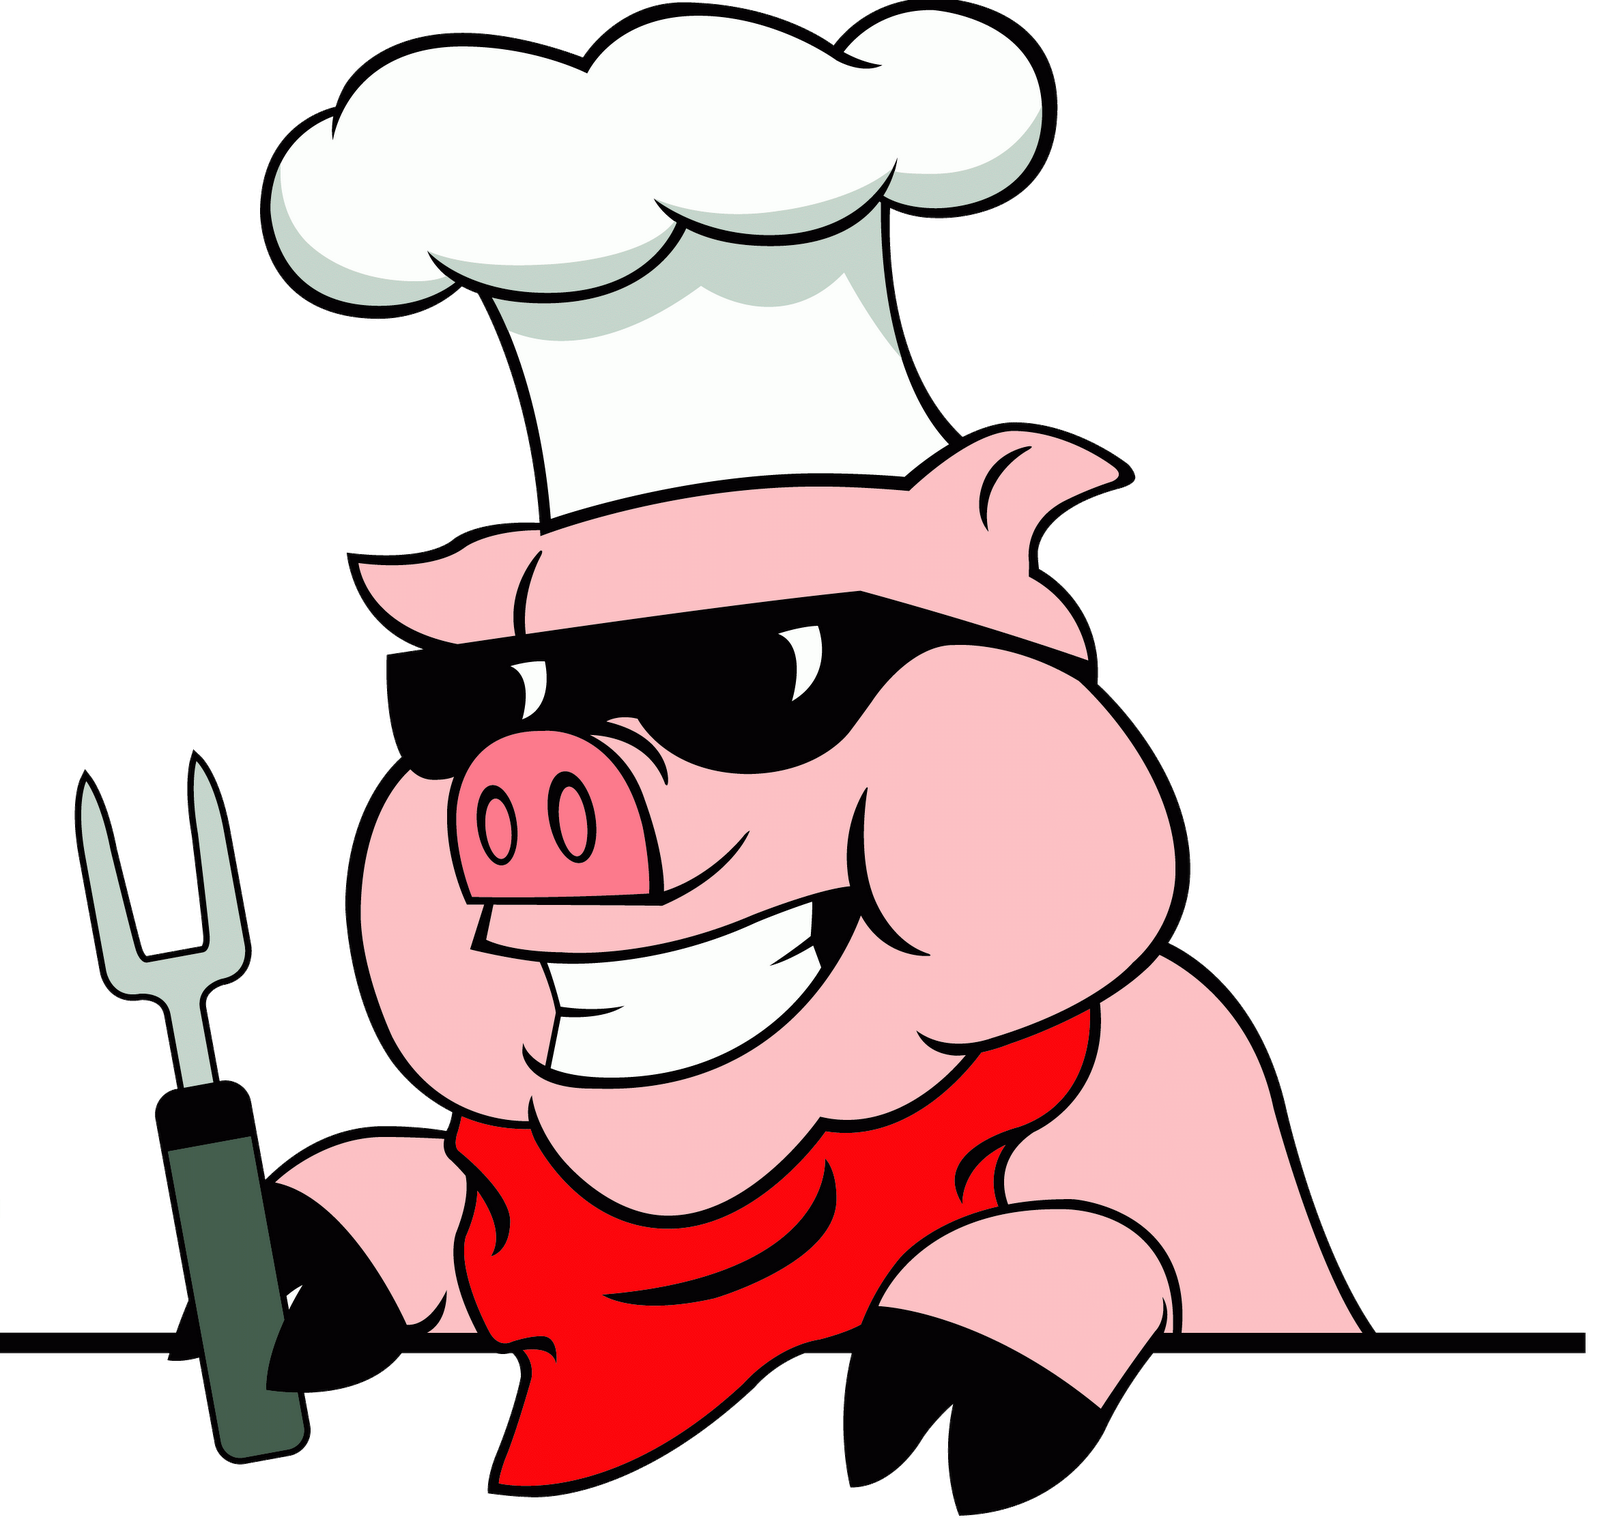 1600x1526 Barbecue Pig Png Transparent Barbecue Pig.png Images. Pluspng